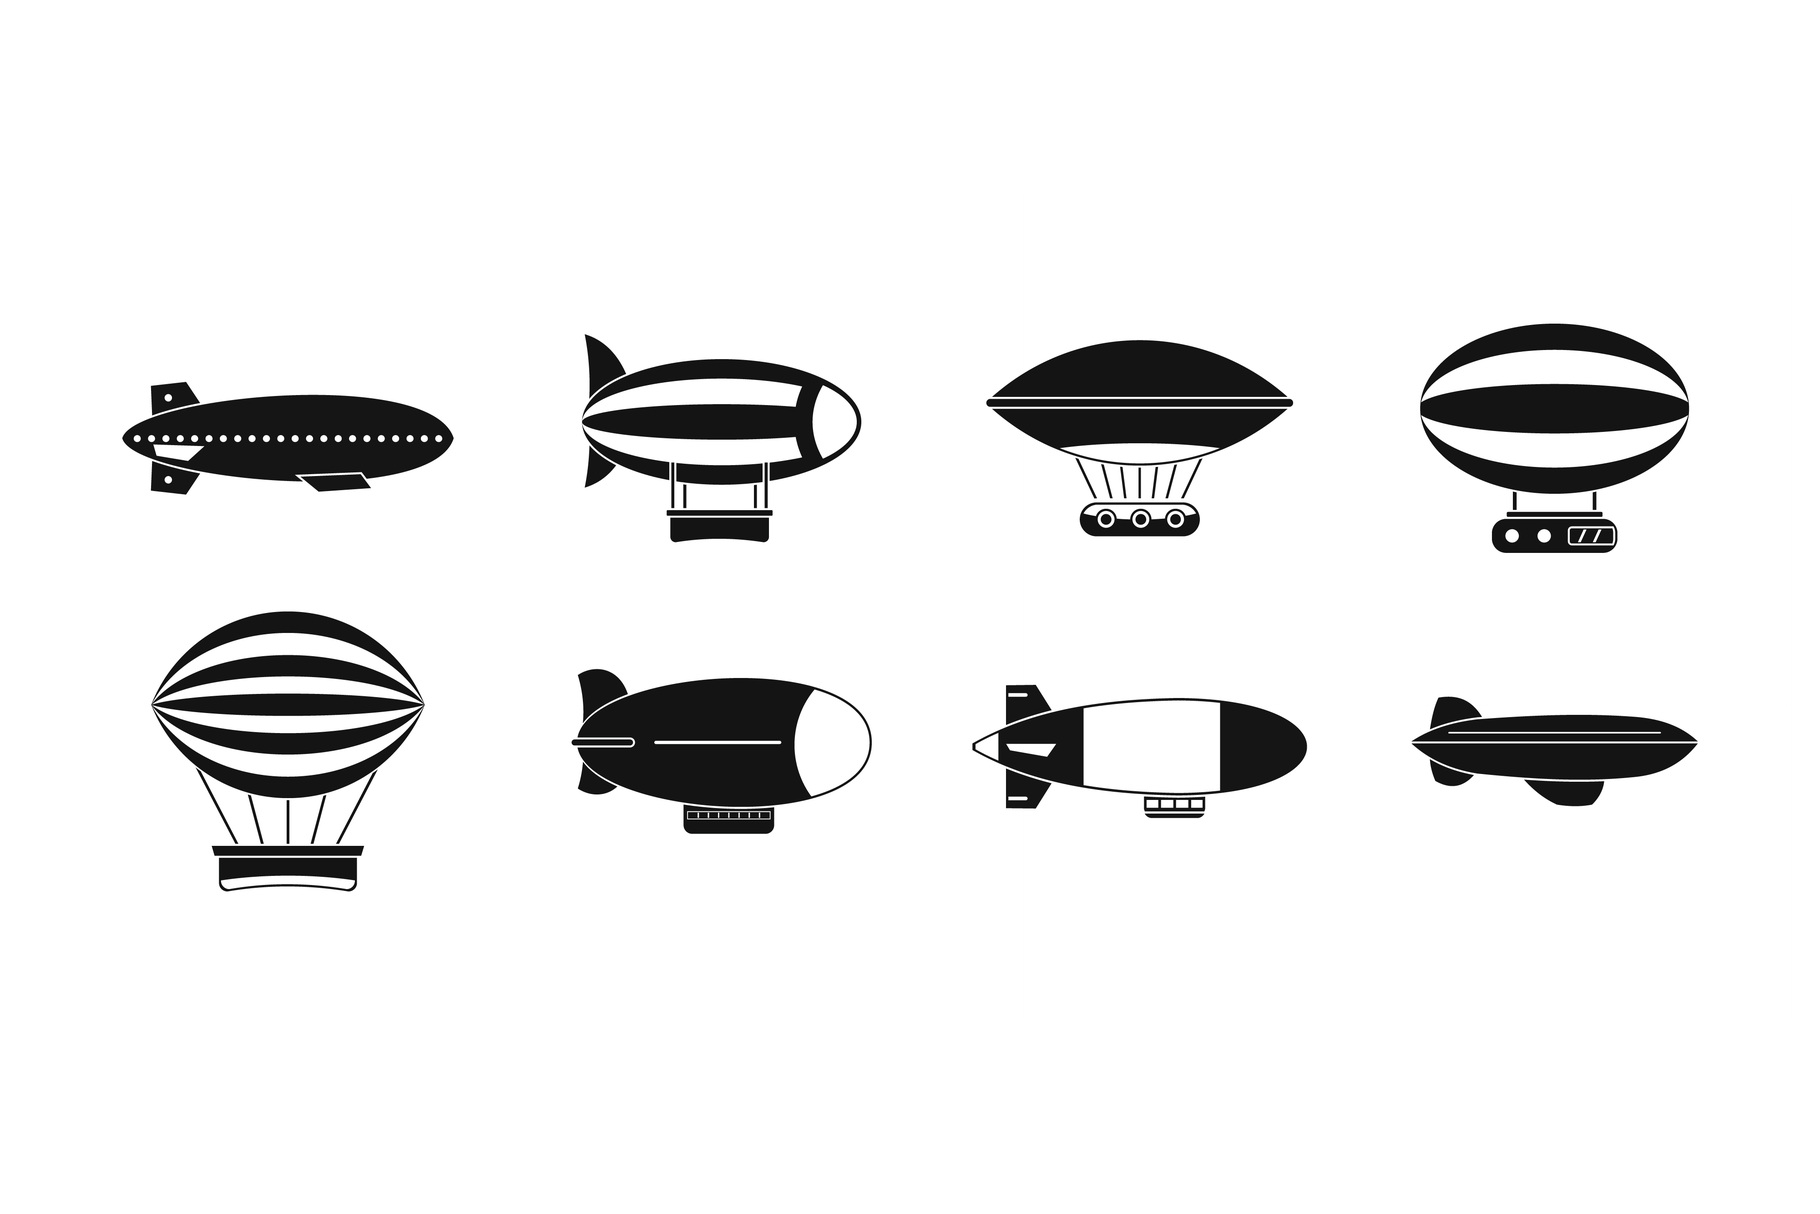 Air ship icon set, simple style example image 1